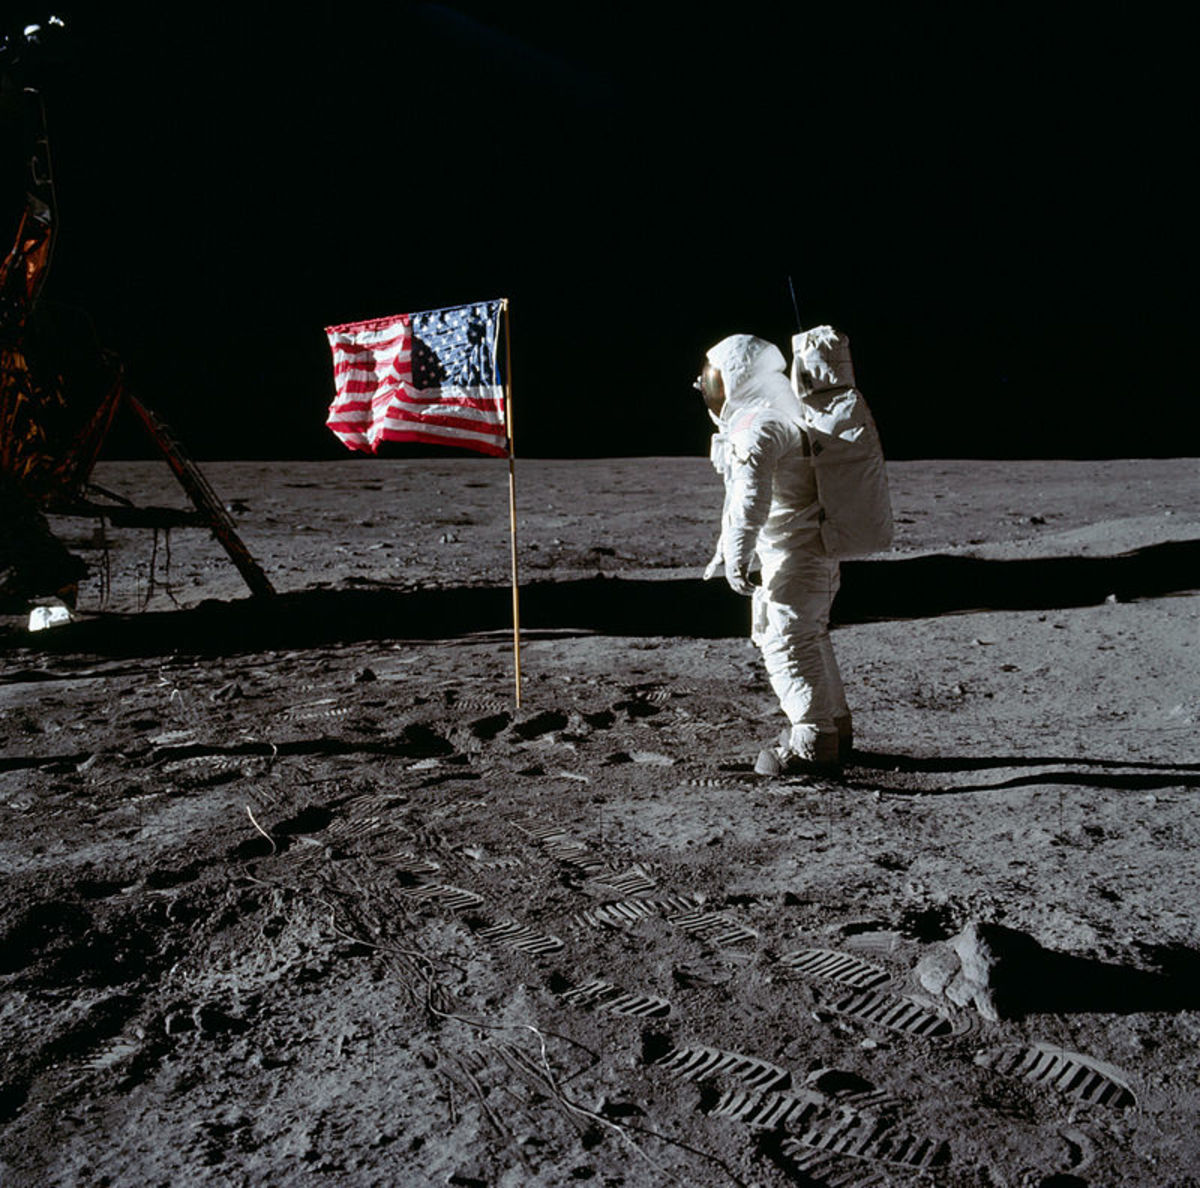 Apollo 11 Moon Landing Photo